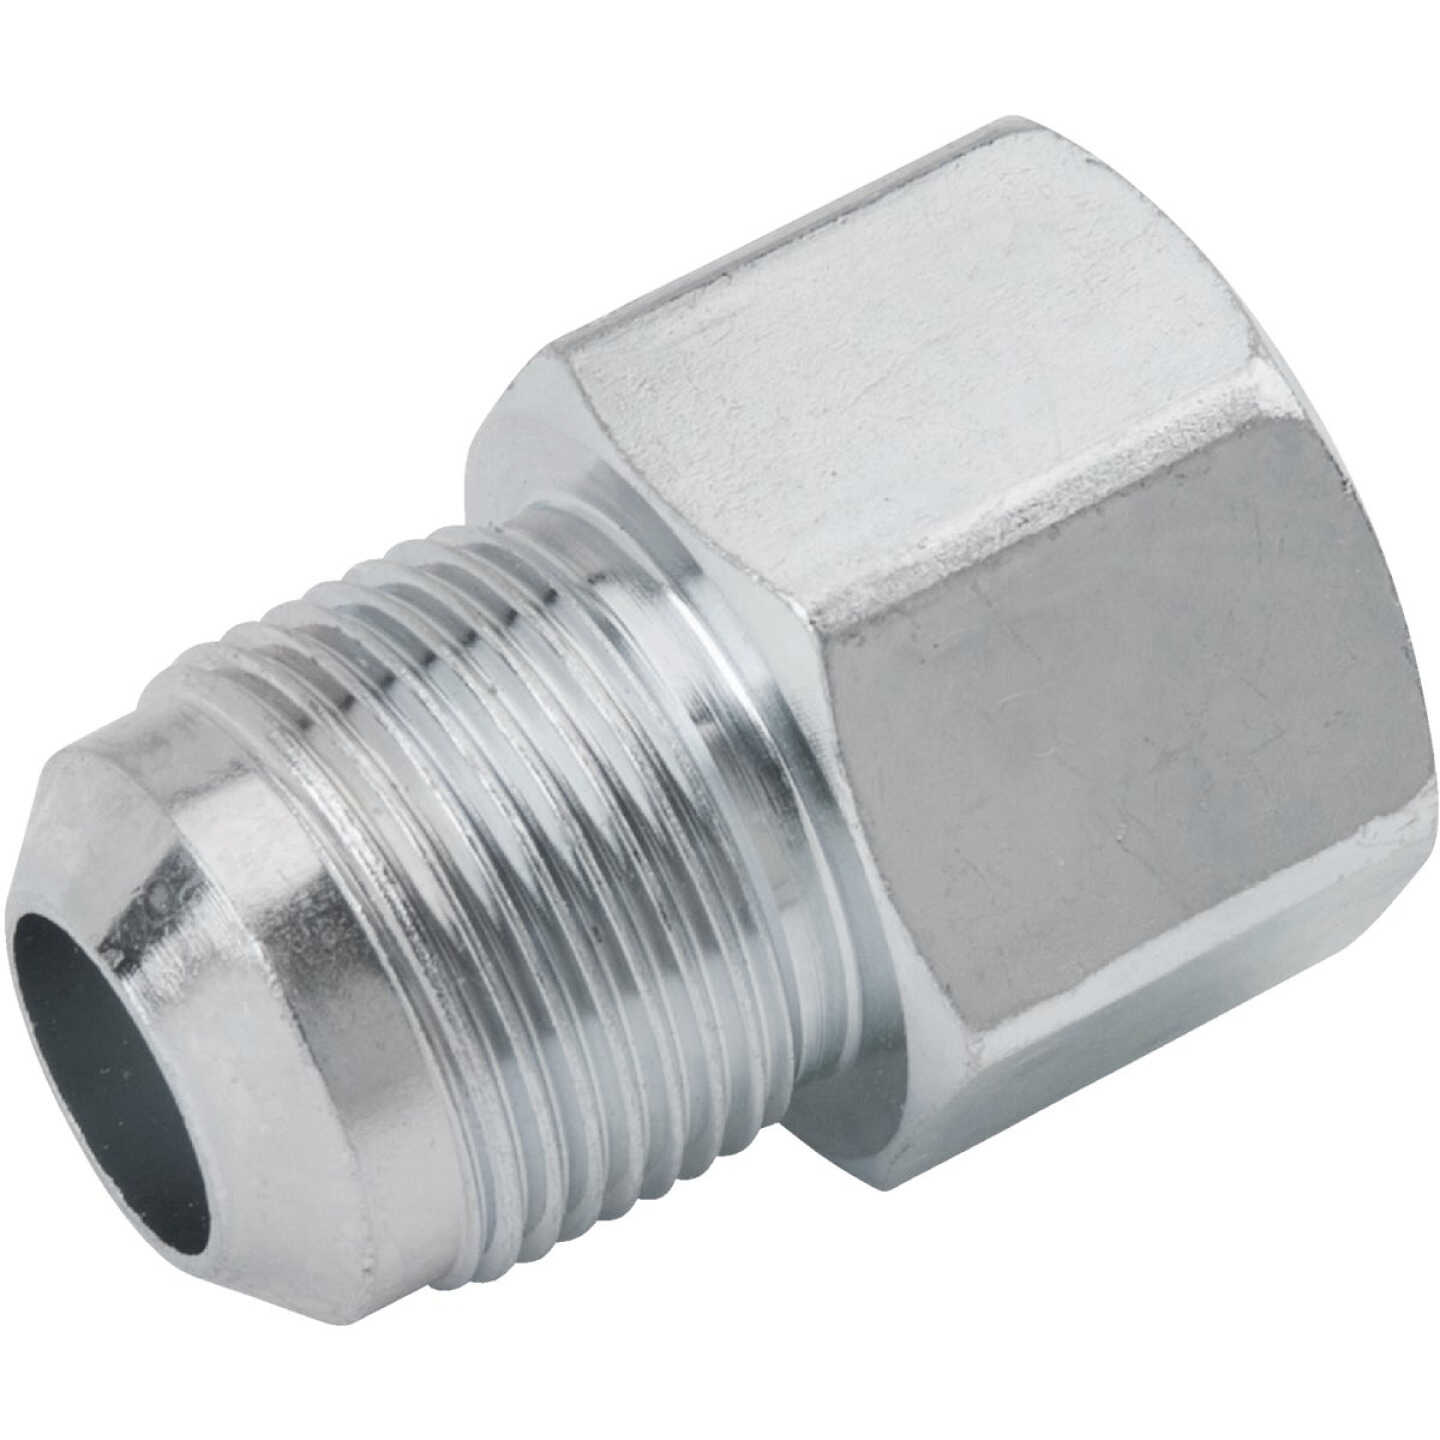 Dormont 5/8 In. OD Male Flare x 3/4 In. FIP Zinc-Plated Carbon Steel Adapter Gas Fitting, Bulk Image 1